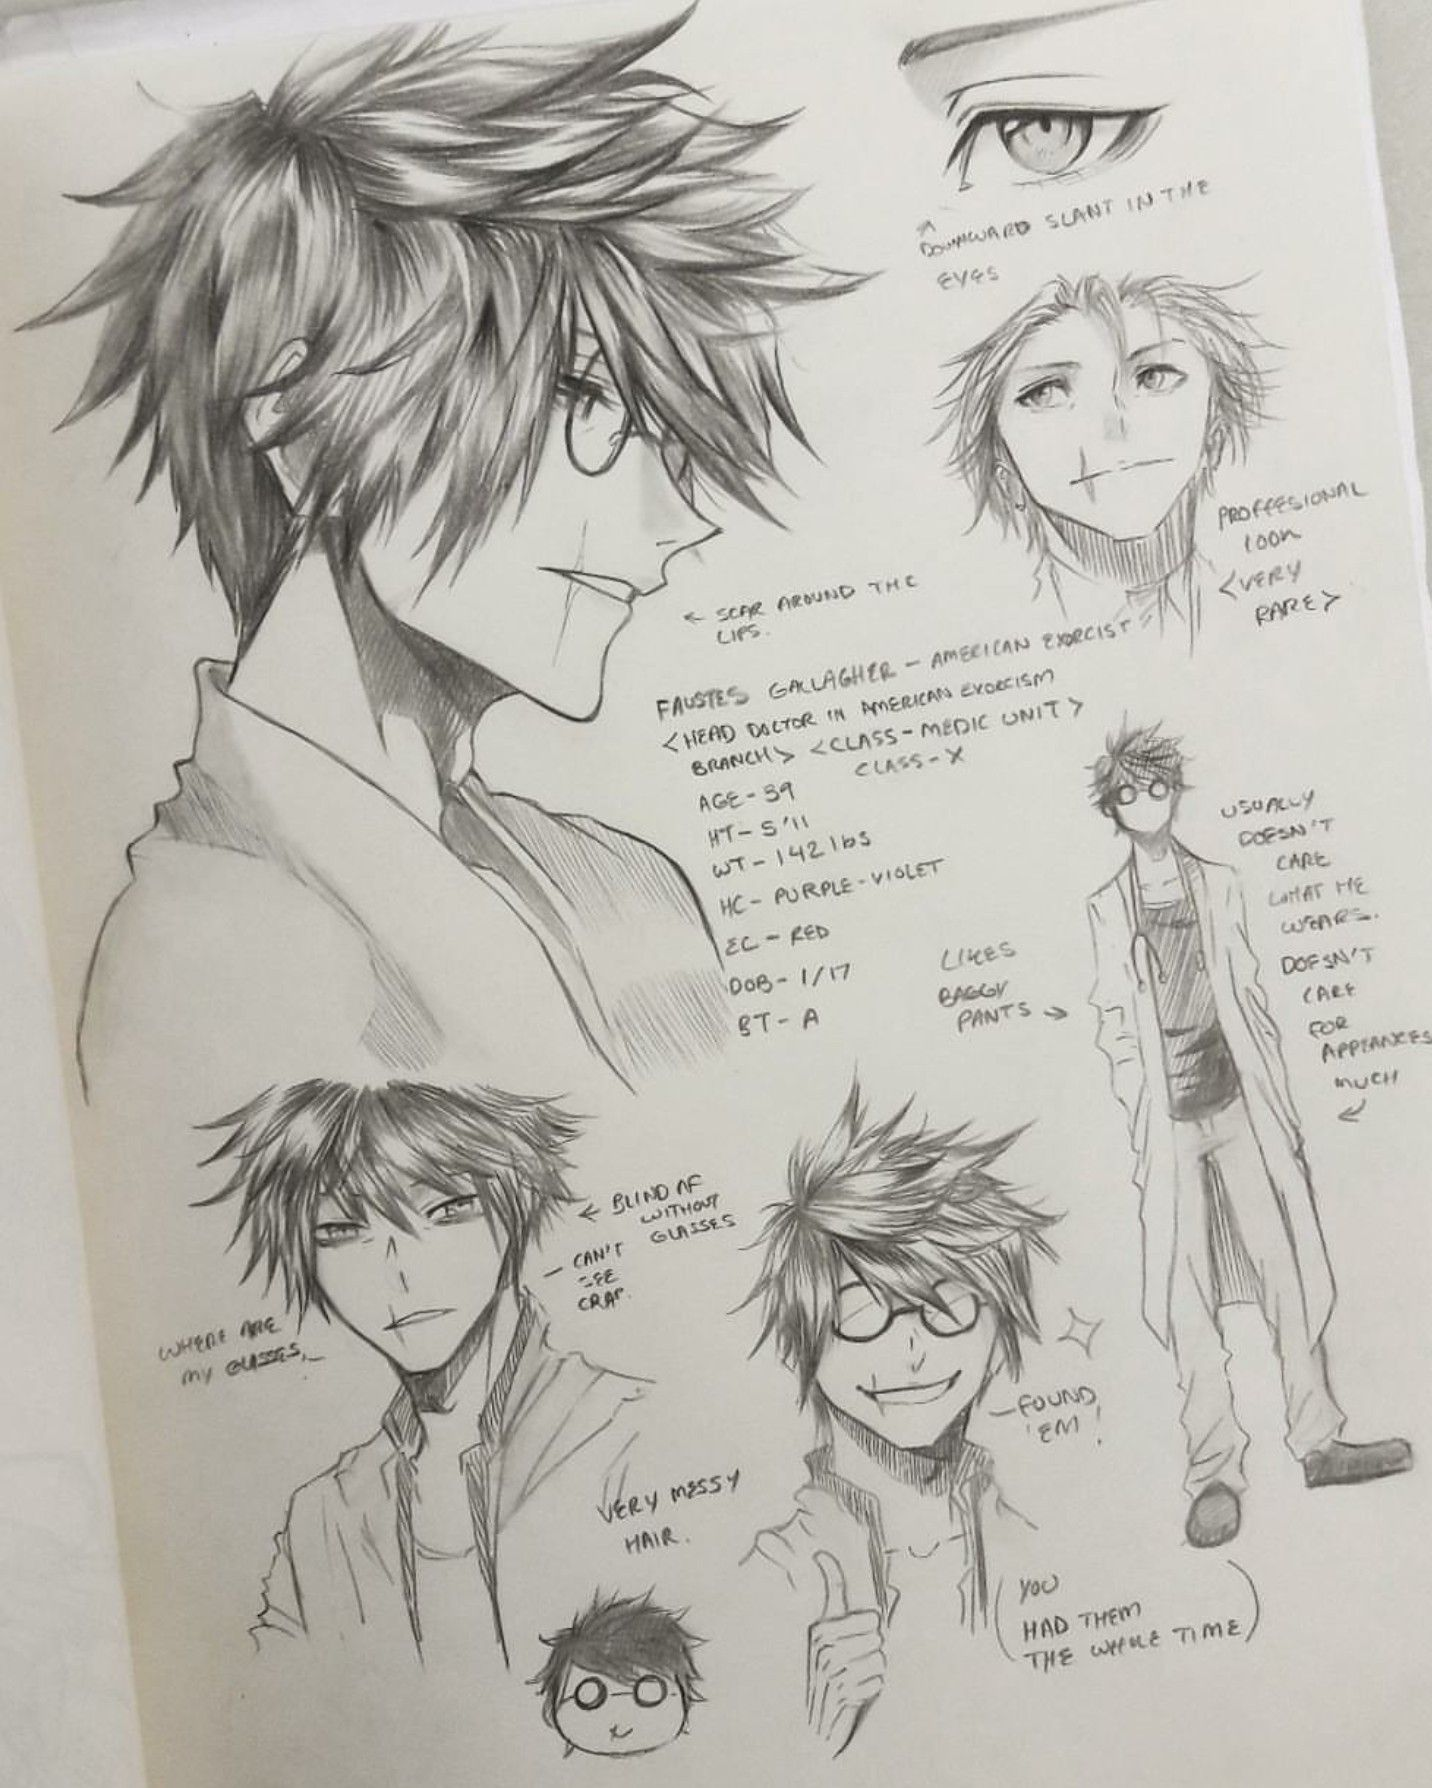 Creating A Male Character Artist Mangakaua983 Anime Drawings Sketches Art Sketches Sketches